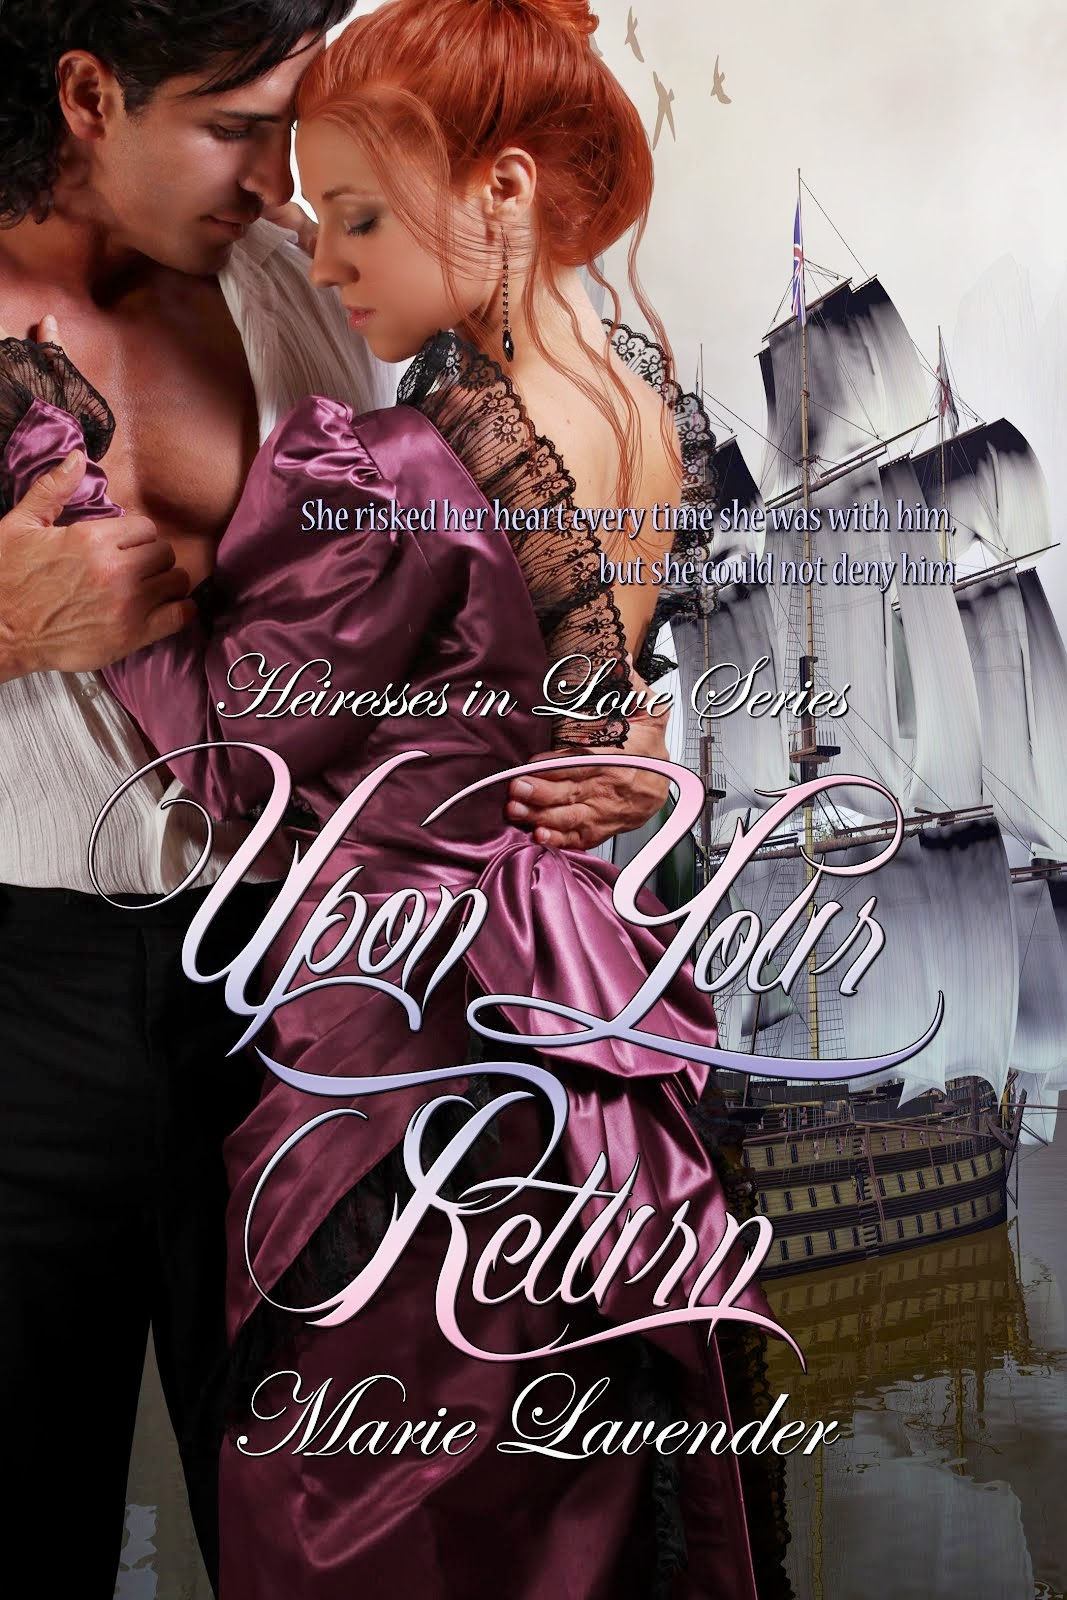 http://www.amazon.com/Upon-Your-Return-Marie-Lavender/dp/1484978099/ref=sr_1_1?ie=UTF8&qid=1391122719&sr=8-1&keywords=Upon+YOur+Return